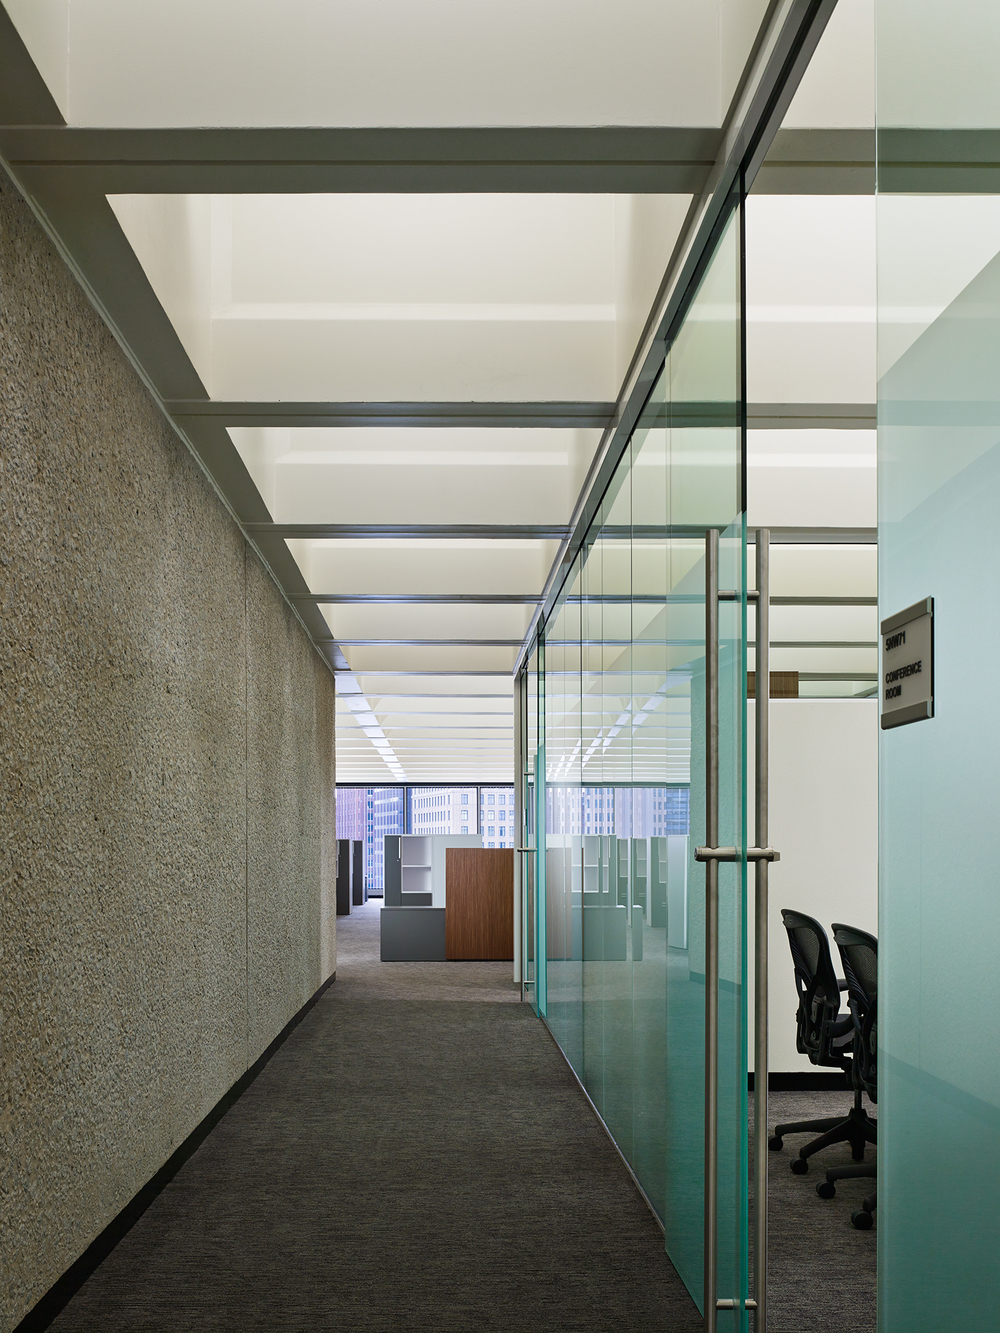 AEG Building  Gordon Bunshaft, SOM  Renovation Architect: BNIM  Des Moines, IA      Return to Projects